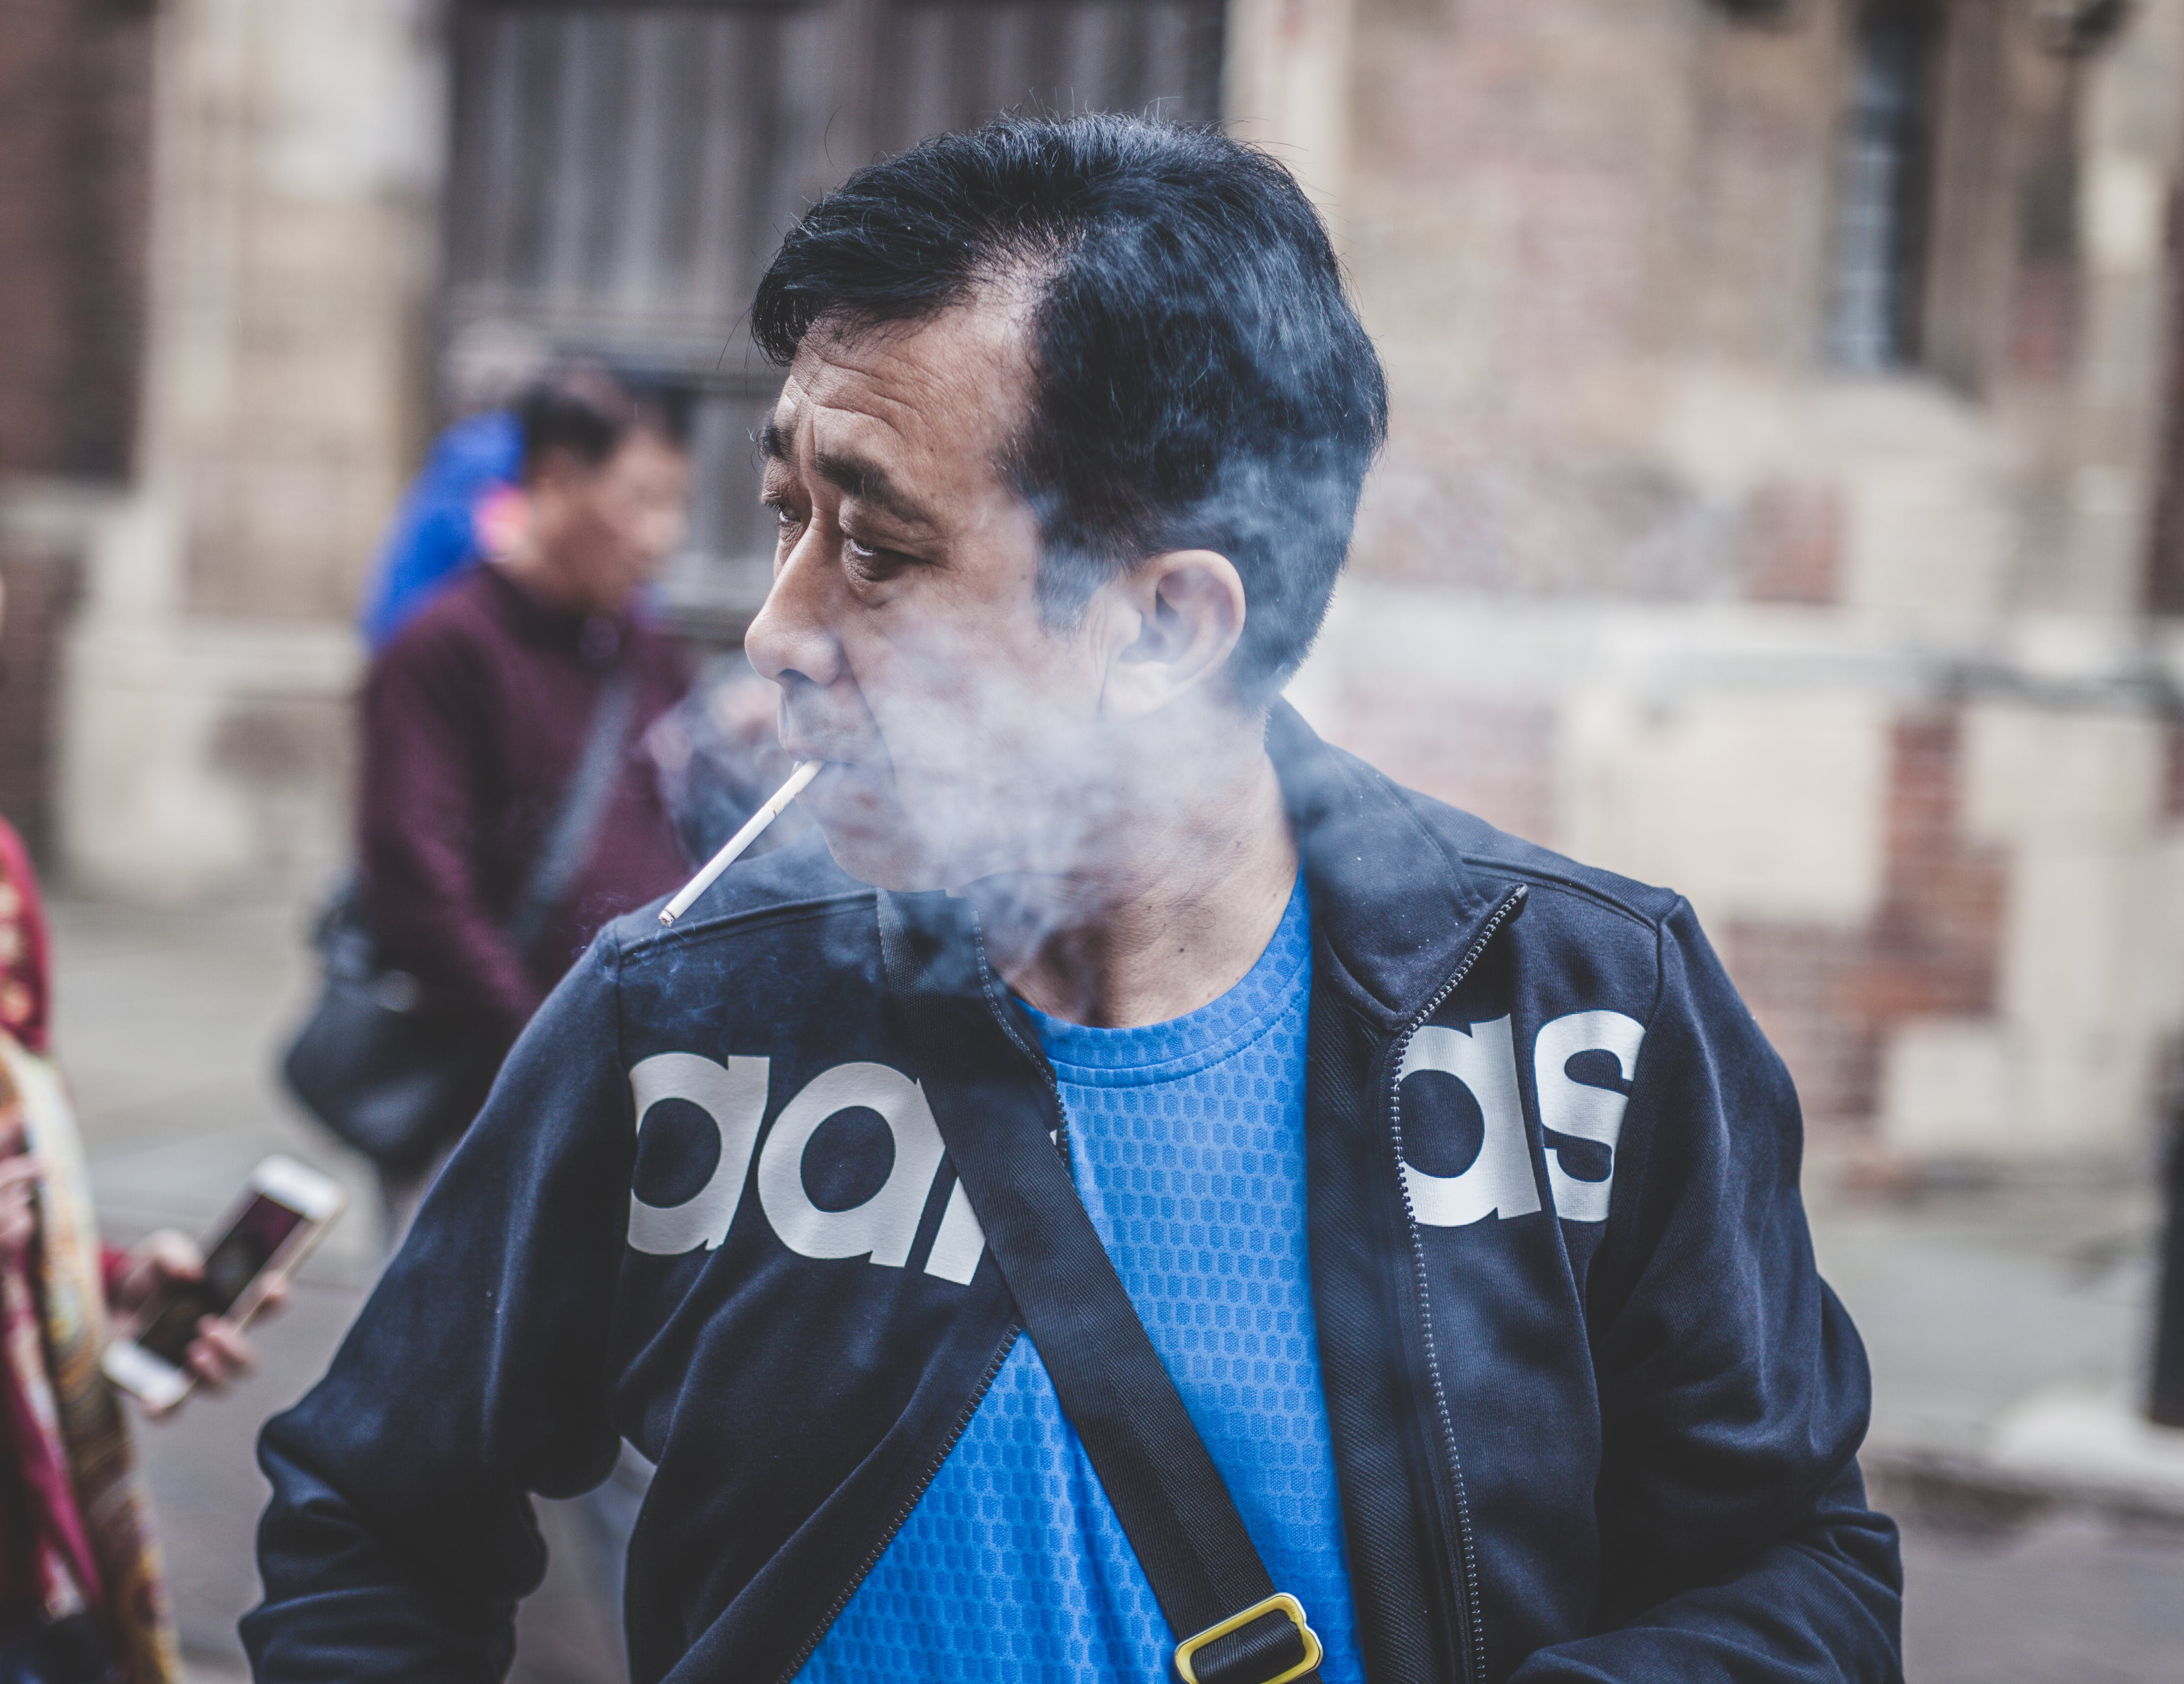 Free stock photo of man, person, jacket, cigarette